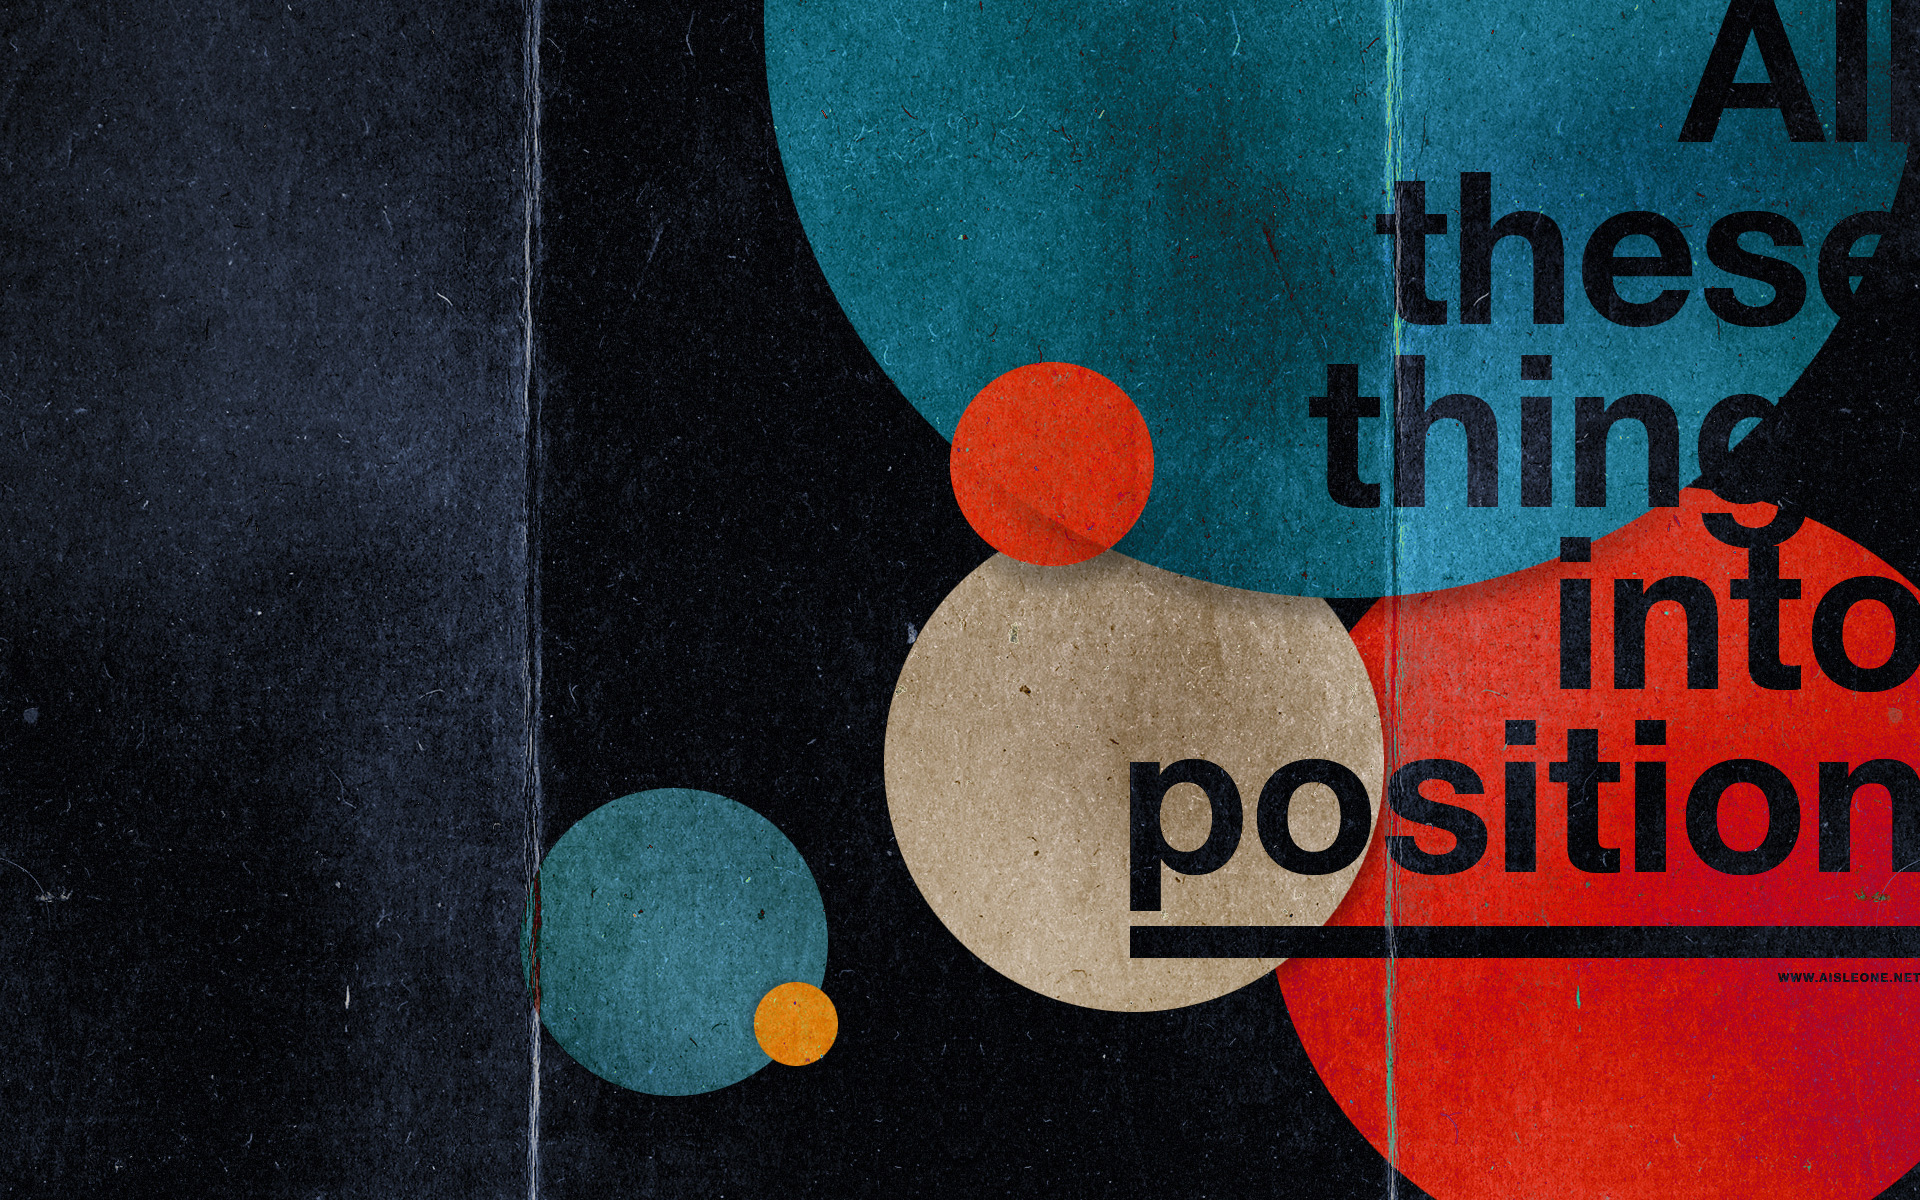 创意/All These Things Into posttion...